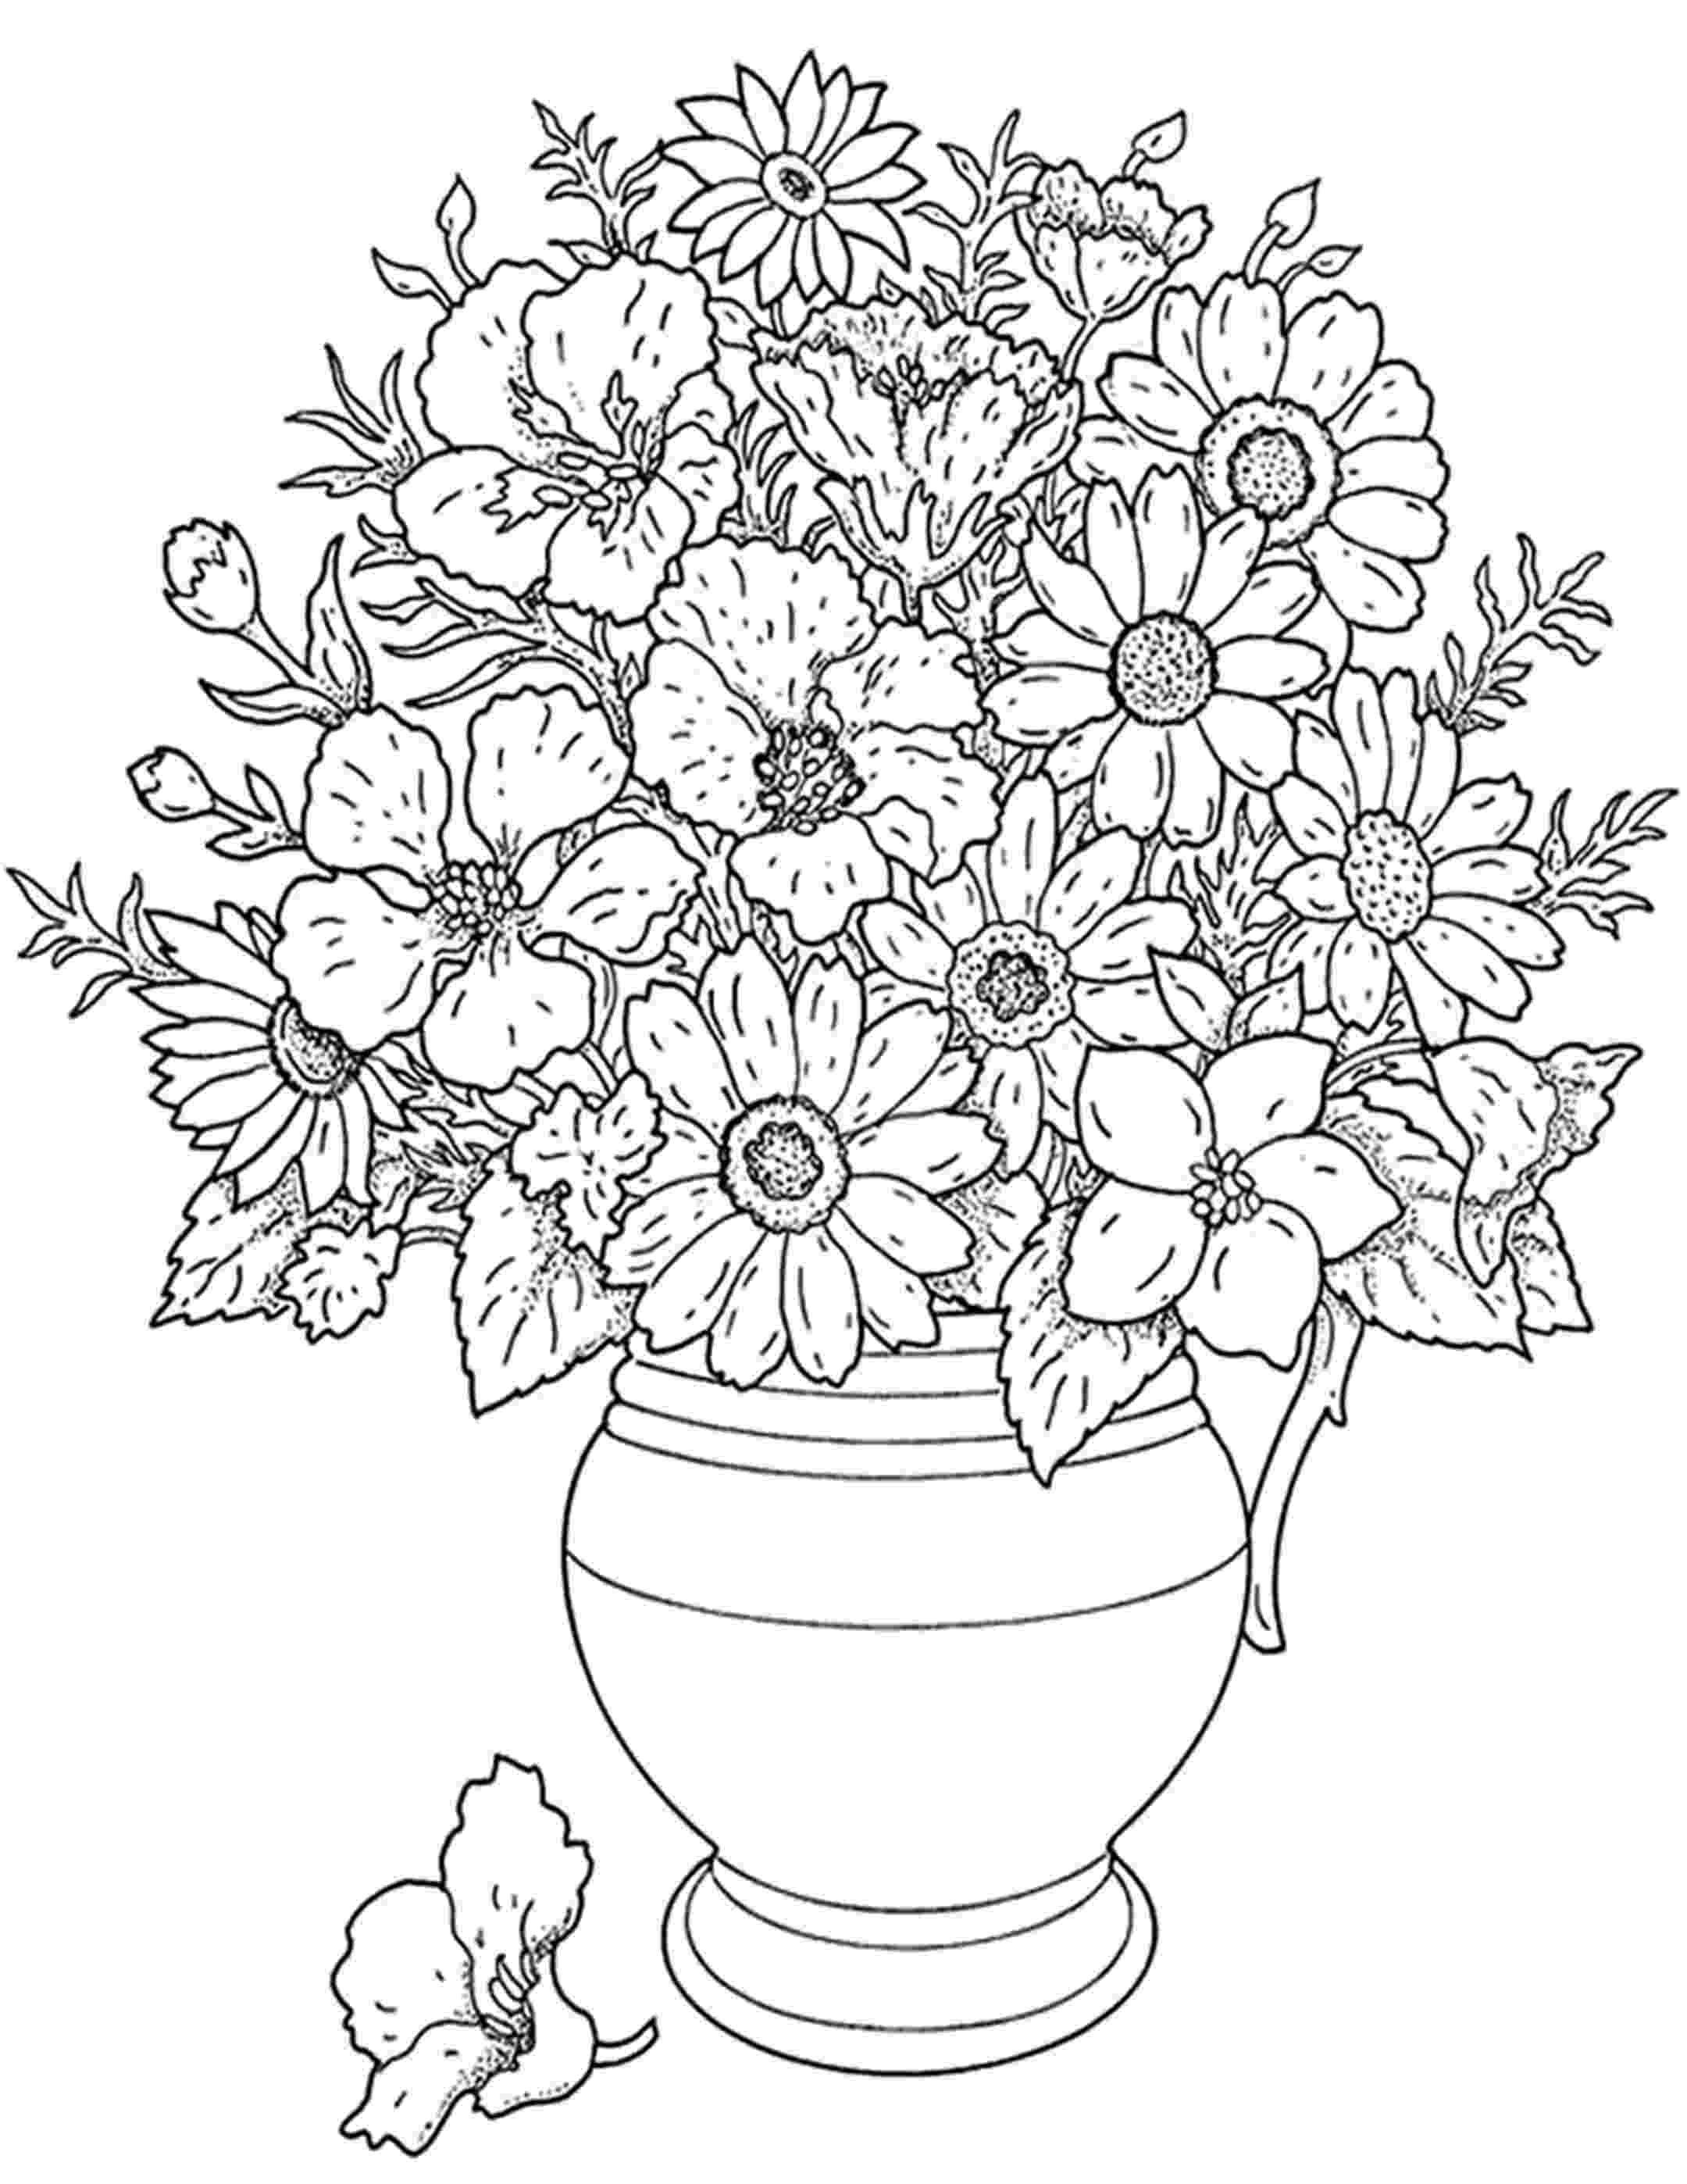 flower coloring books flowers paisley flowers adult coloring pages flower coloring books